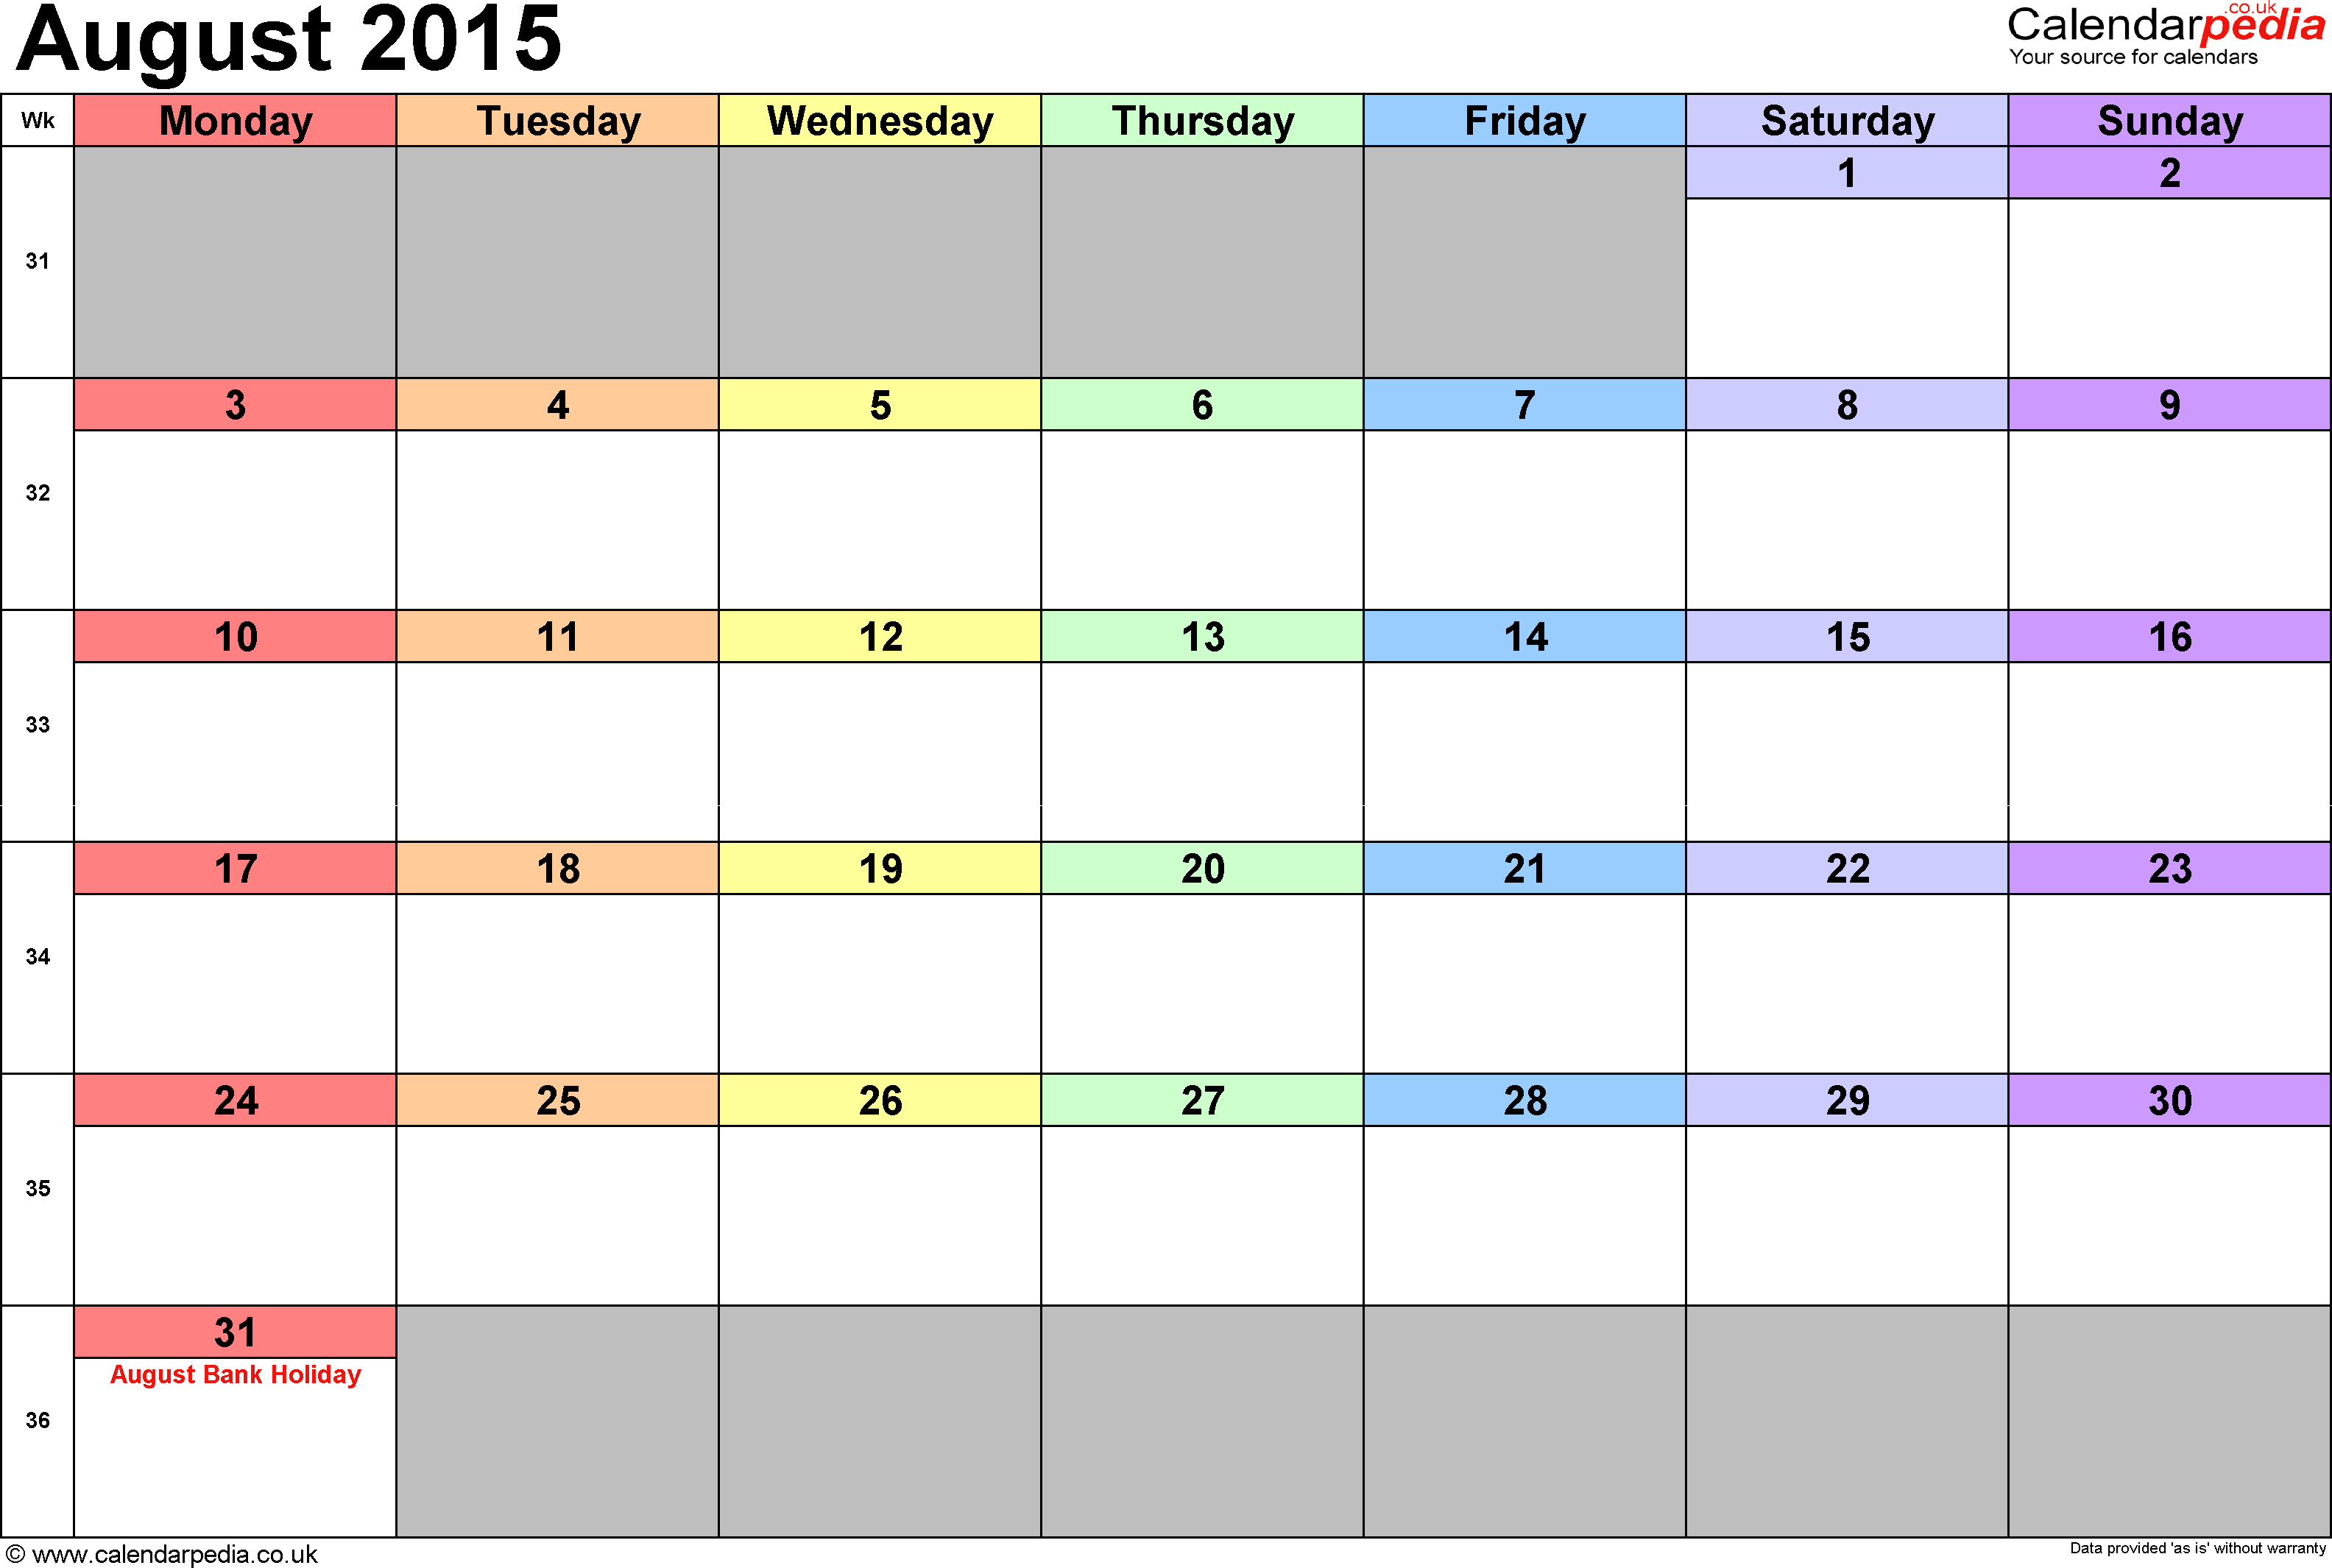 Calendar August 2015, landscape orientation, 1 page, with UK bank holidays and week numbers